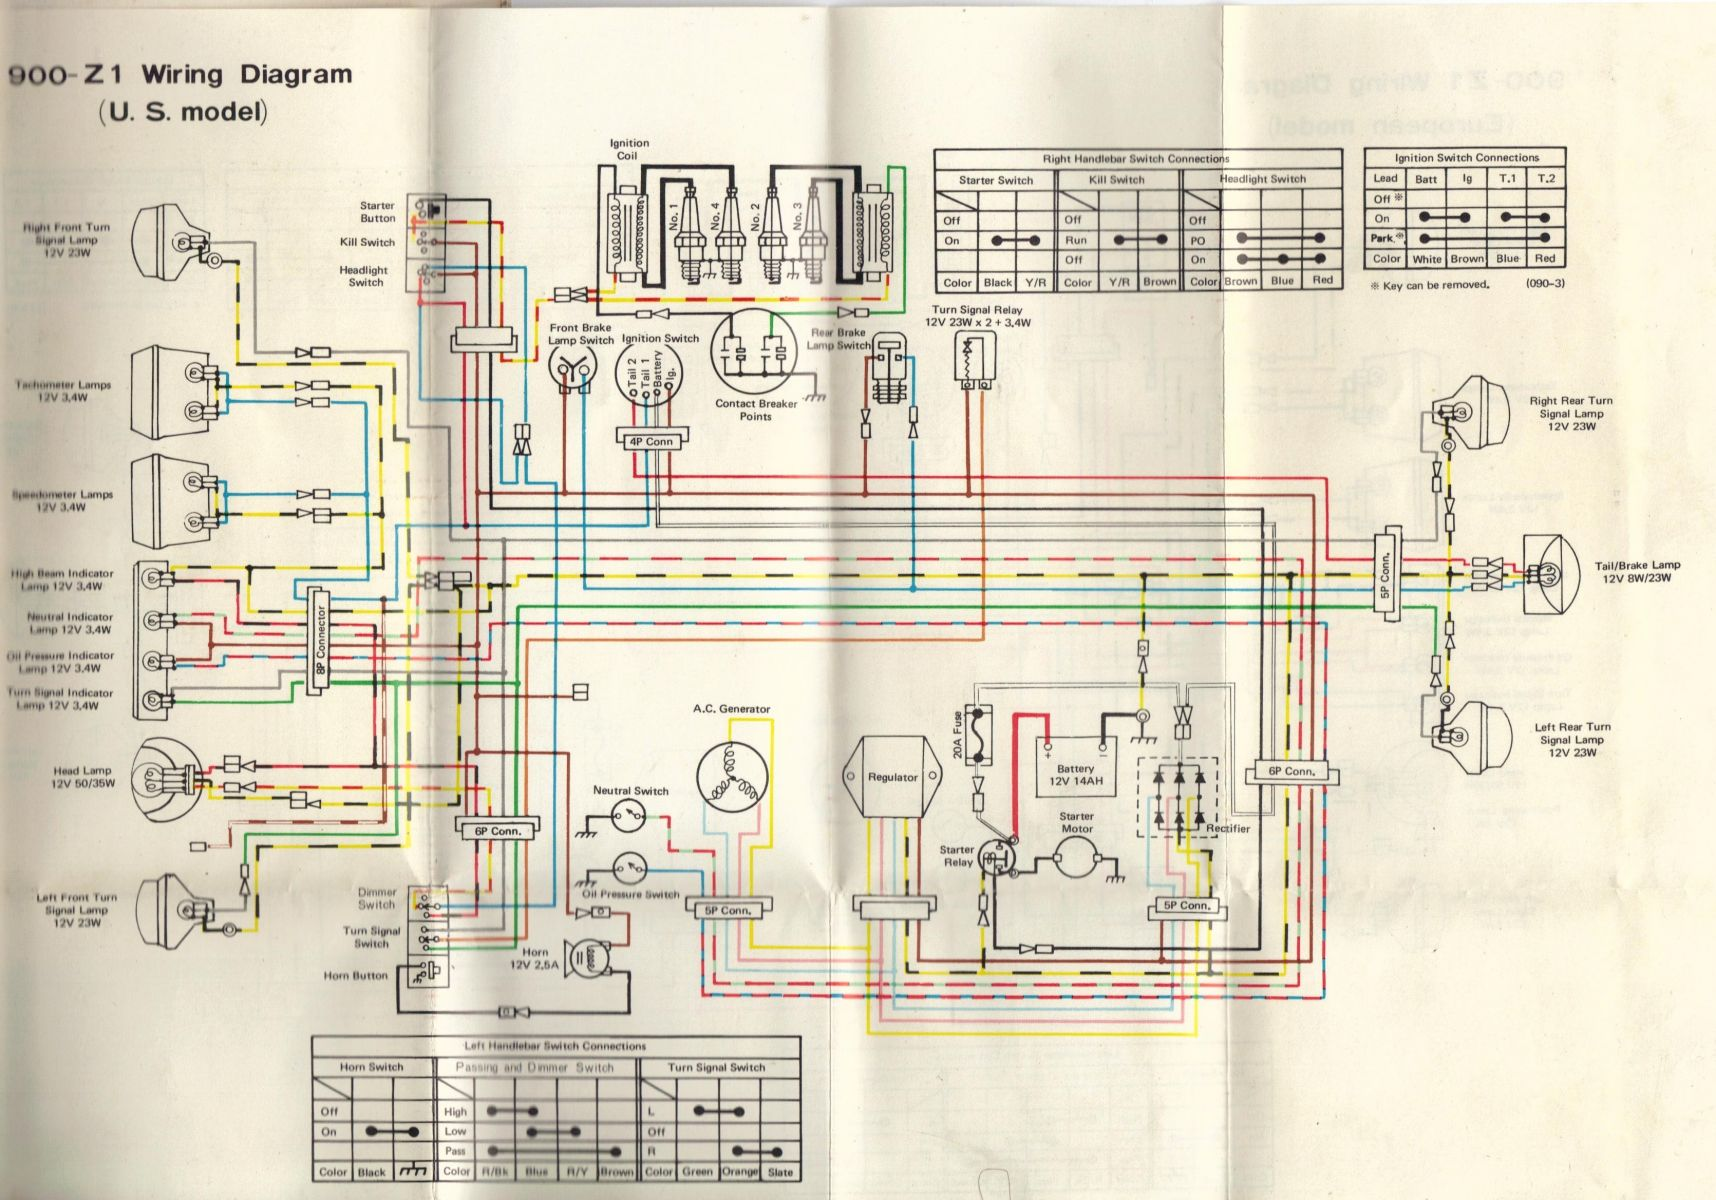 z1wiringdiagram2001 2?resize\=1716%2C1200\&ssl\=1 z1 wiring diagram coleman furnace wiring diagram \u2022 wiring diagrams Philco Model 60 at aneh.co